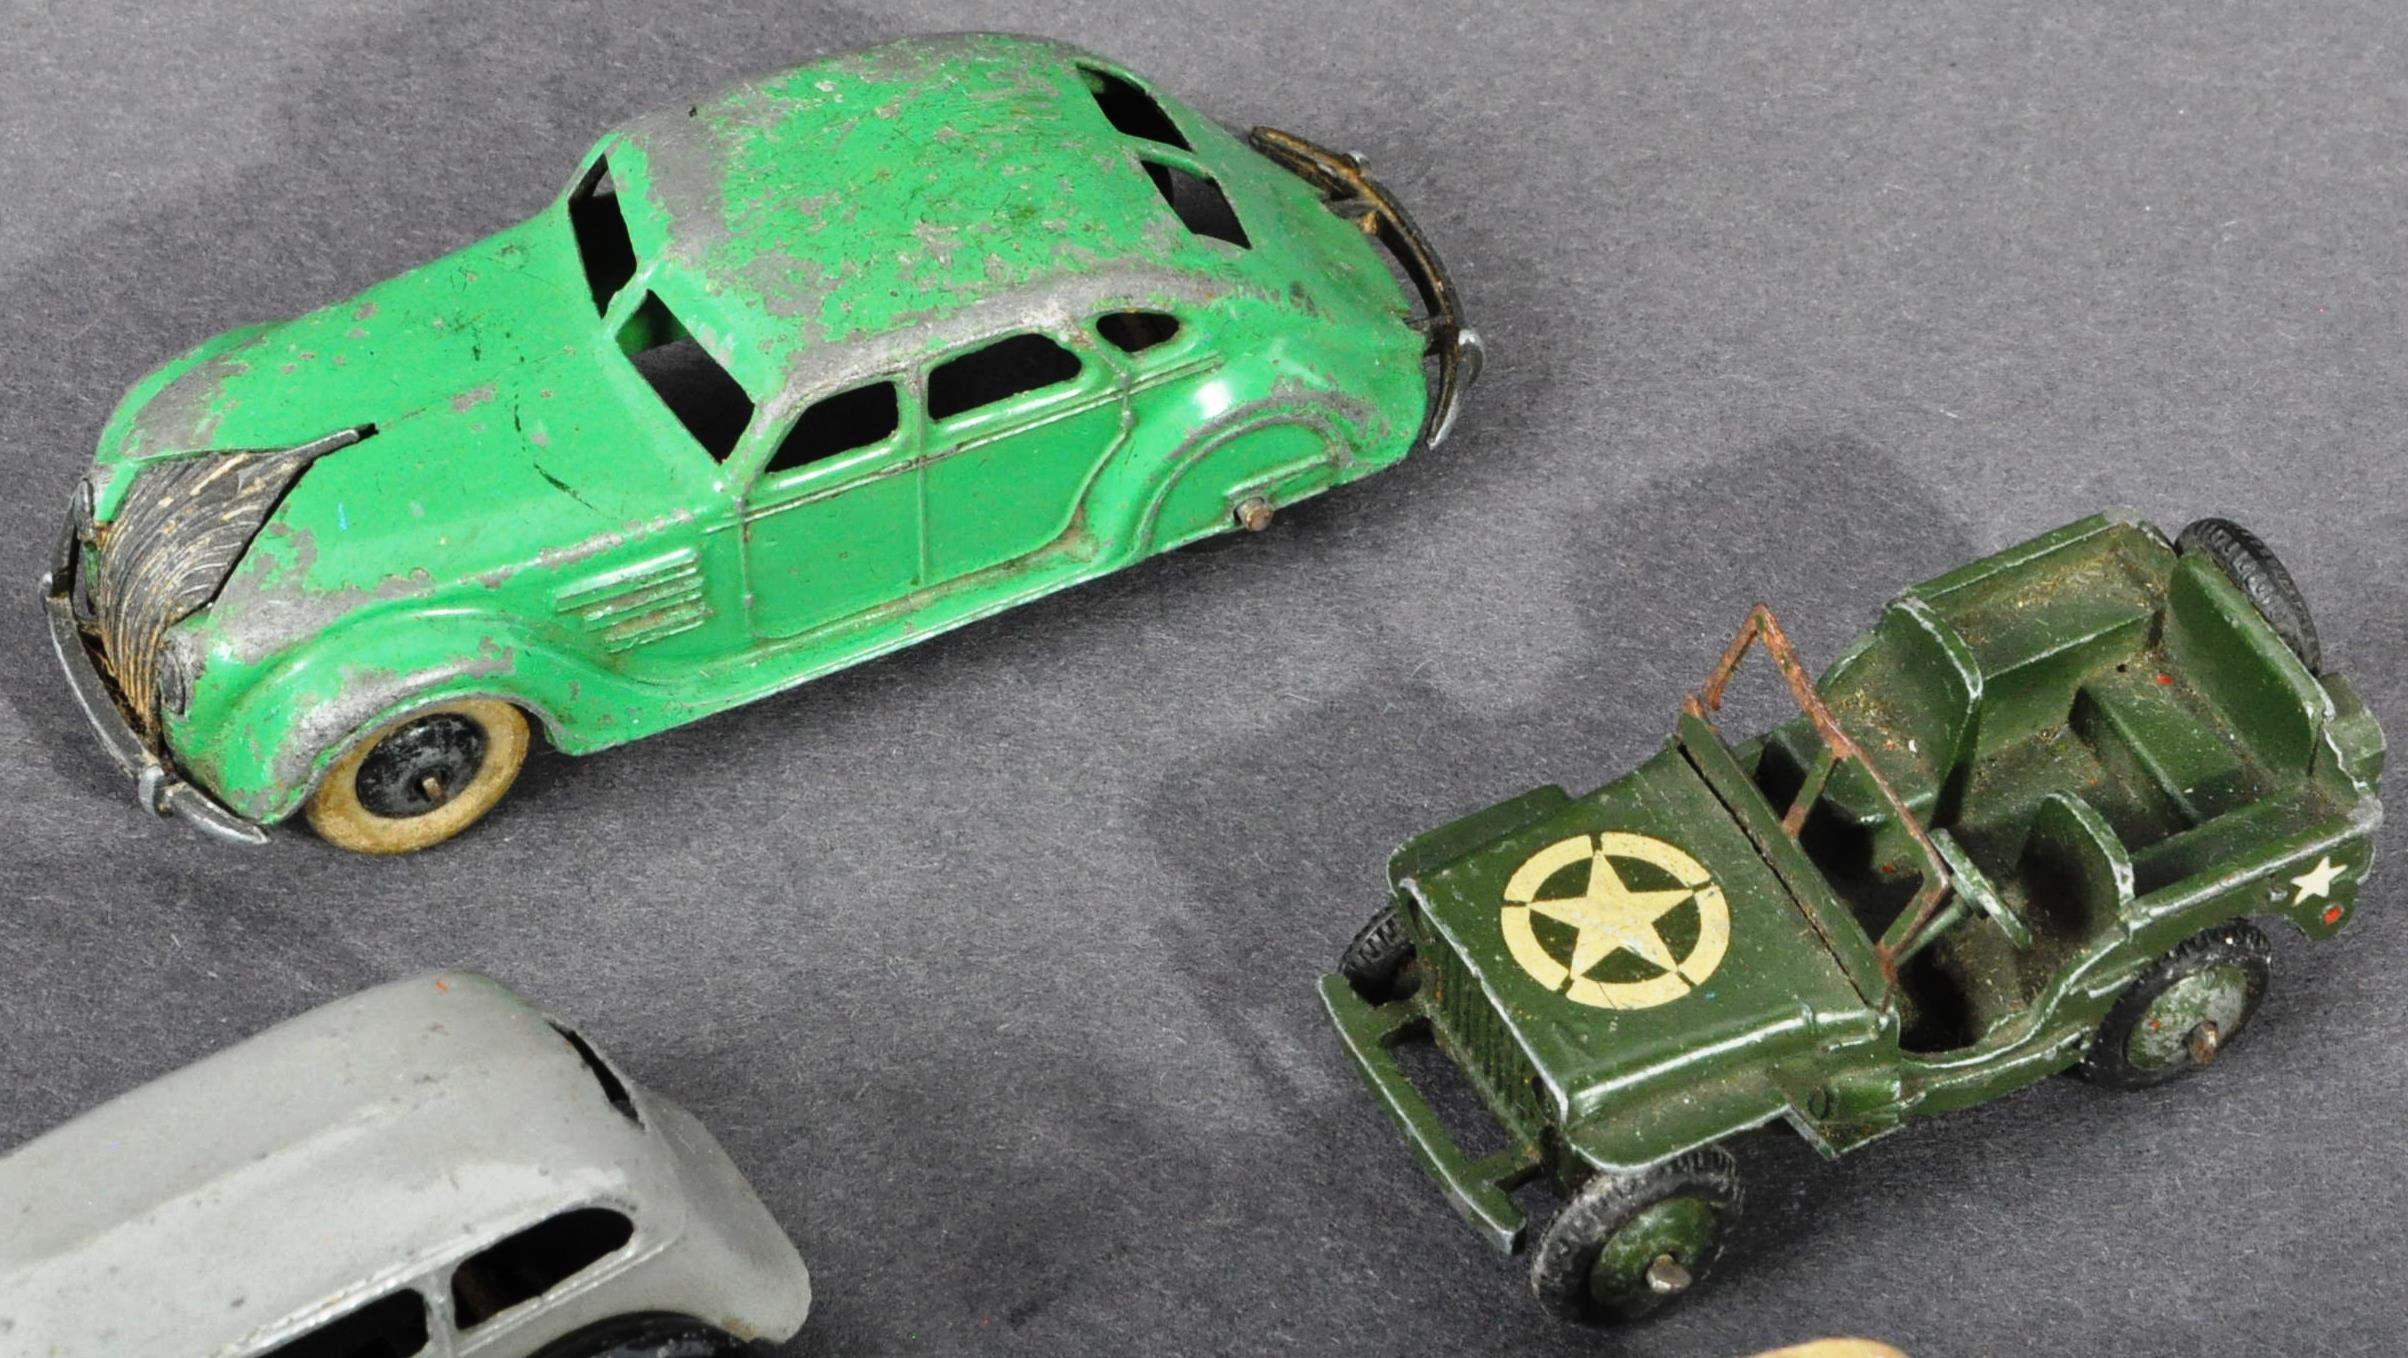 COLLECTION OF ORIGINAL VINTAGE DINKY TOYS DIECAST MODELS - Image 3 of 6